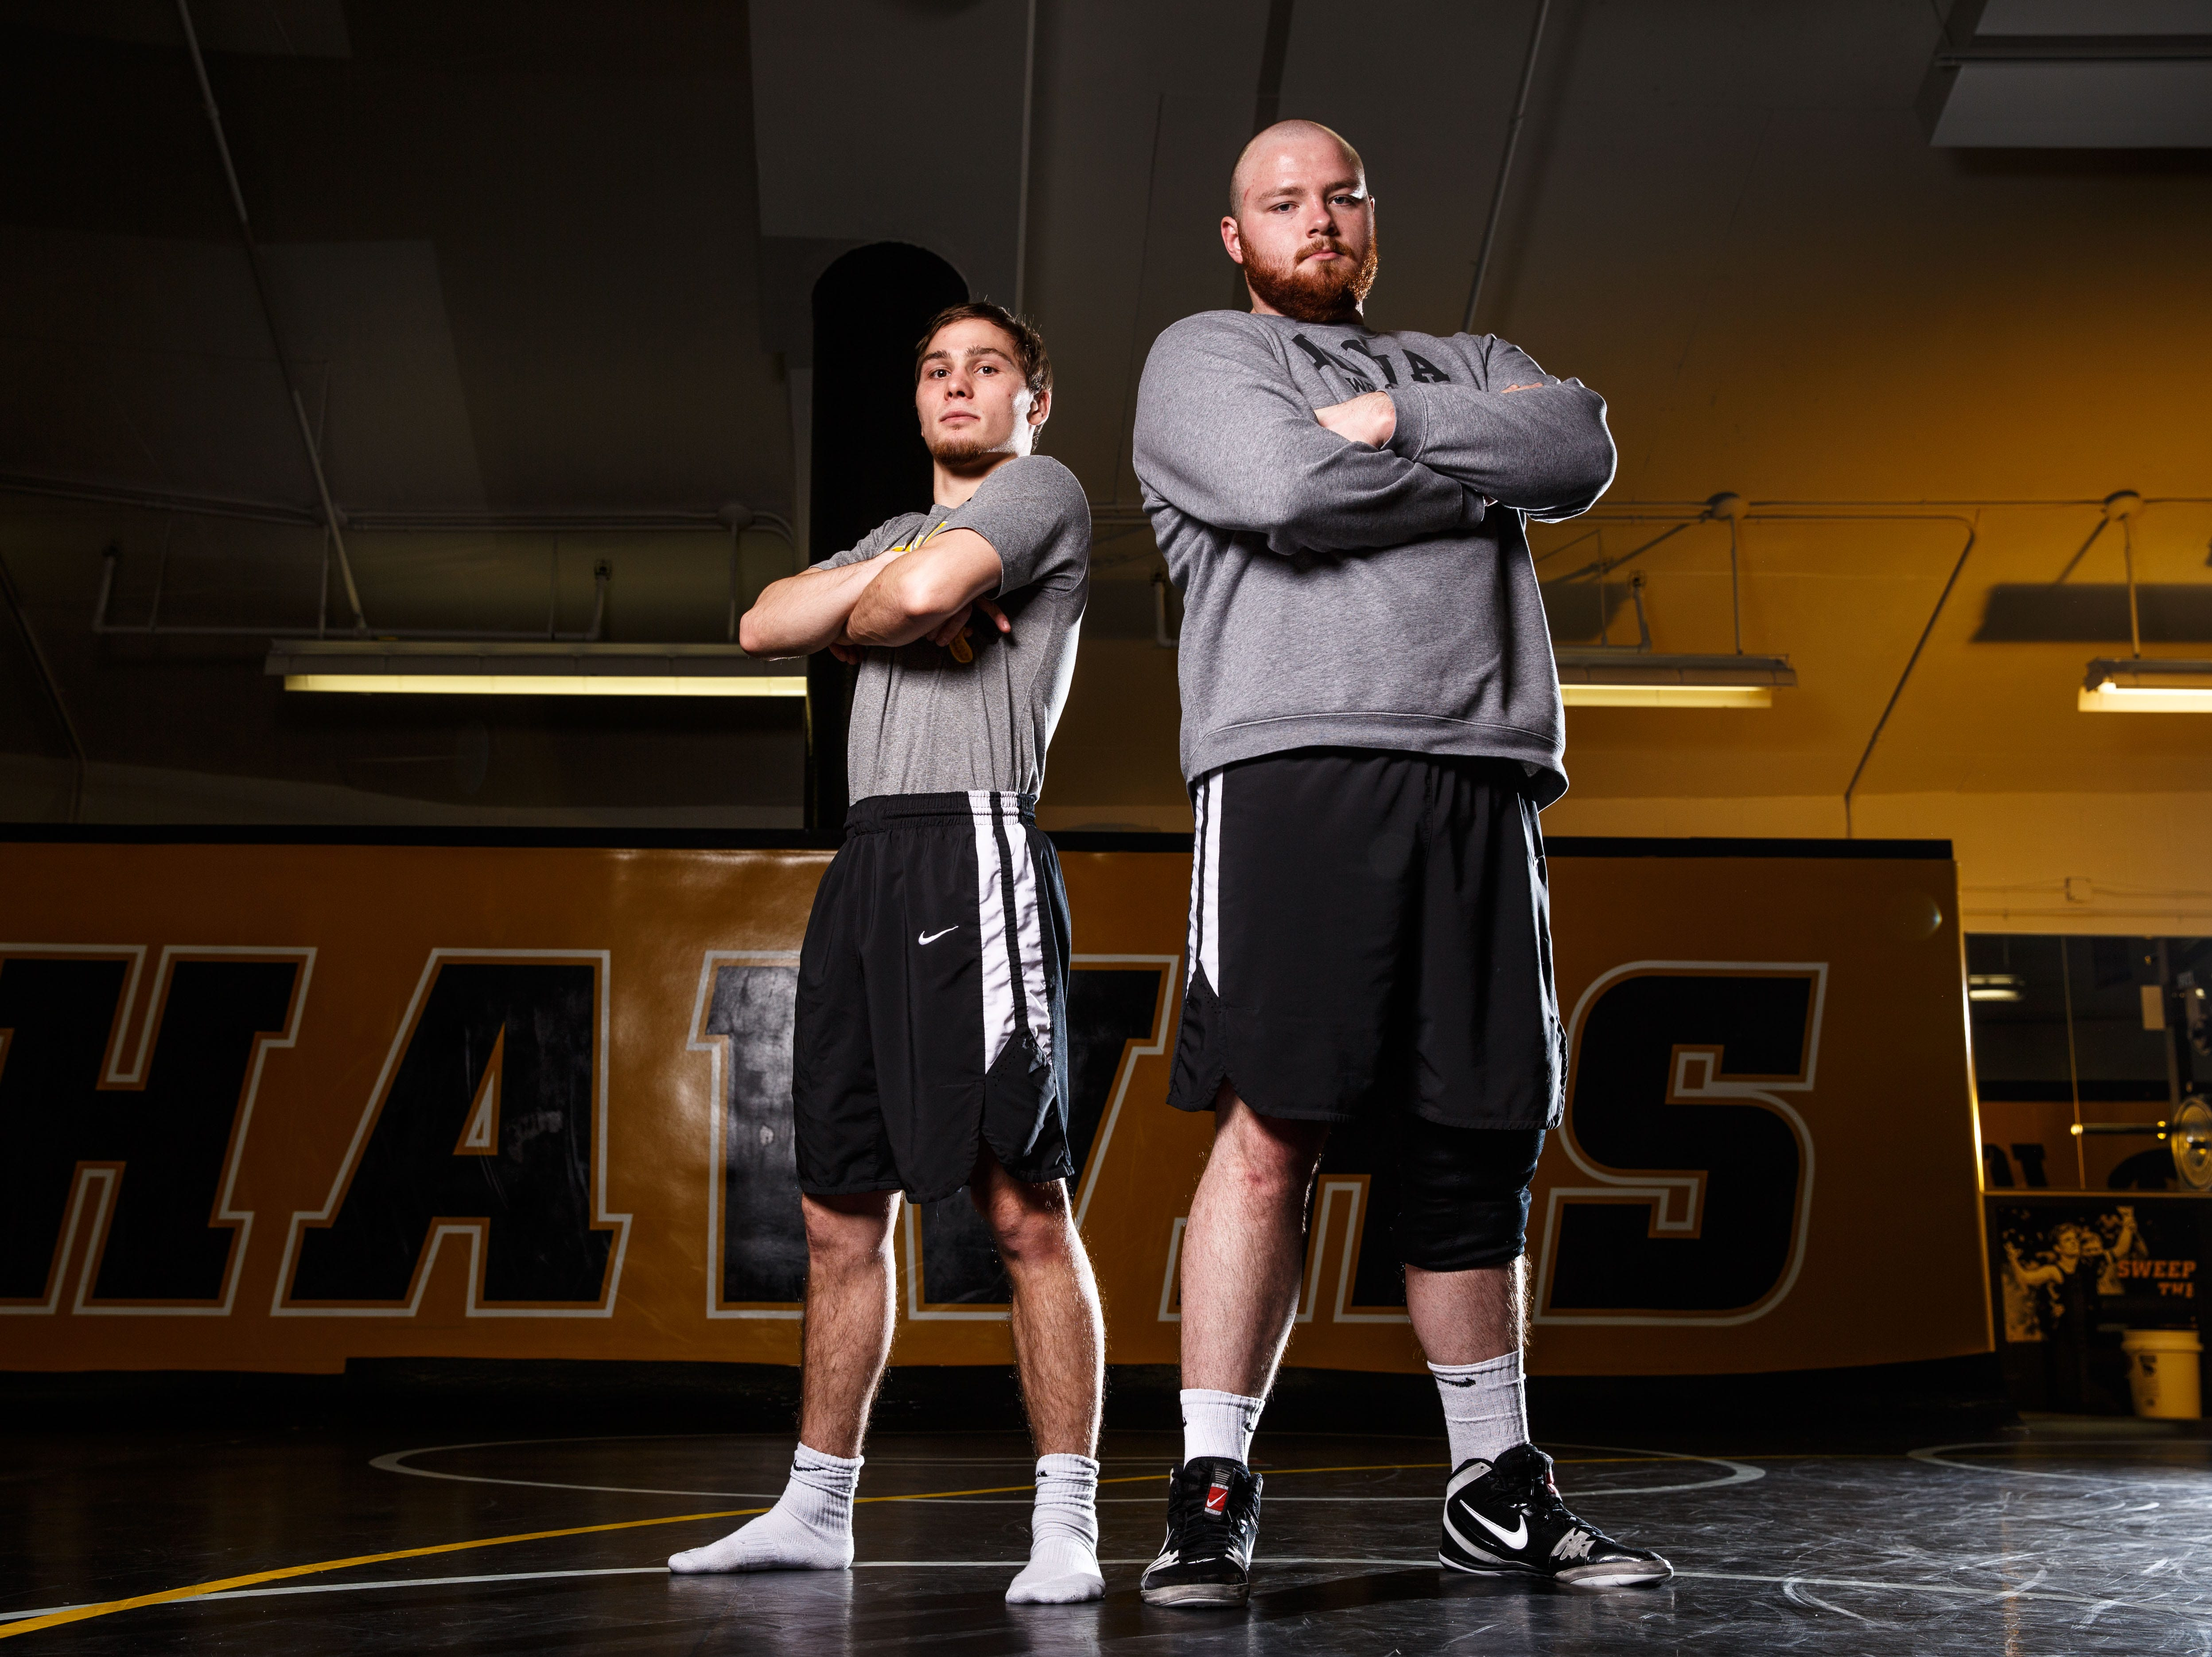 Spencer Lee, left, and Sam Stoll stand for a portrait during Iowa wrestling media day Monday, Nov. 5, 2018.